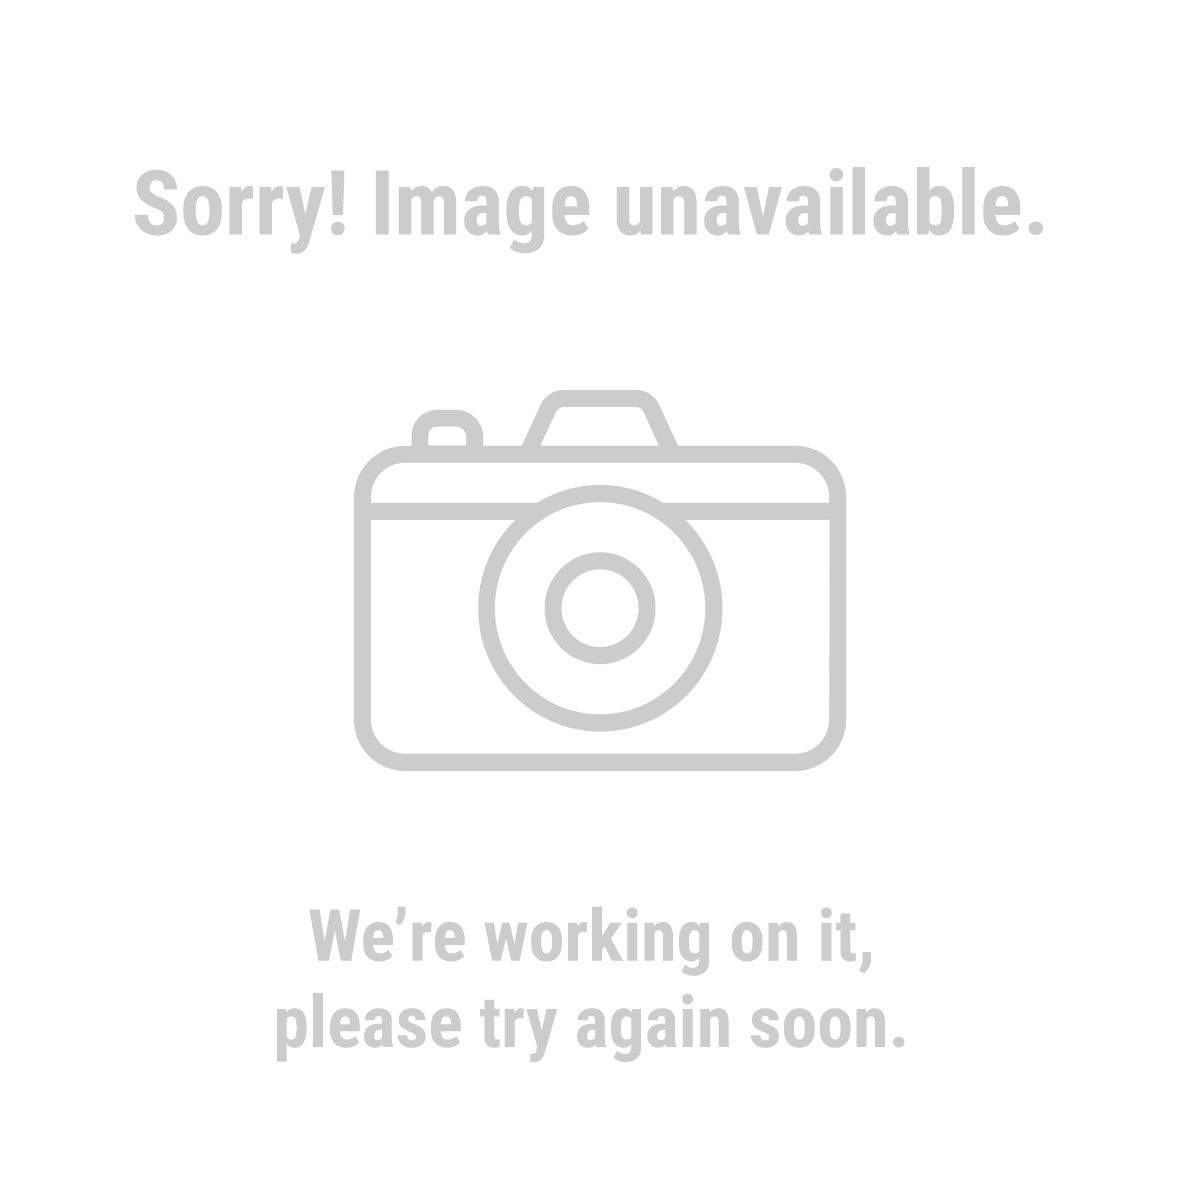 Bauer 63443 1 in. SDS Variable Speed Pro Rotary Hammer Kit